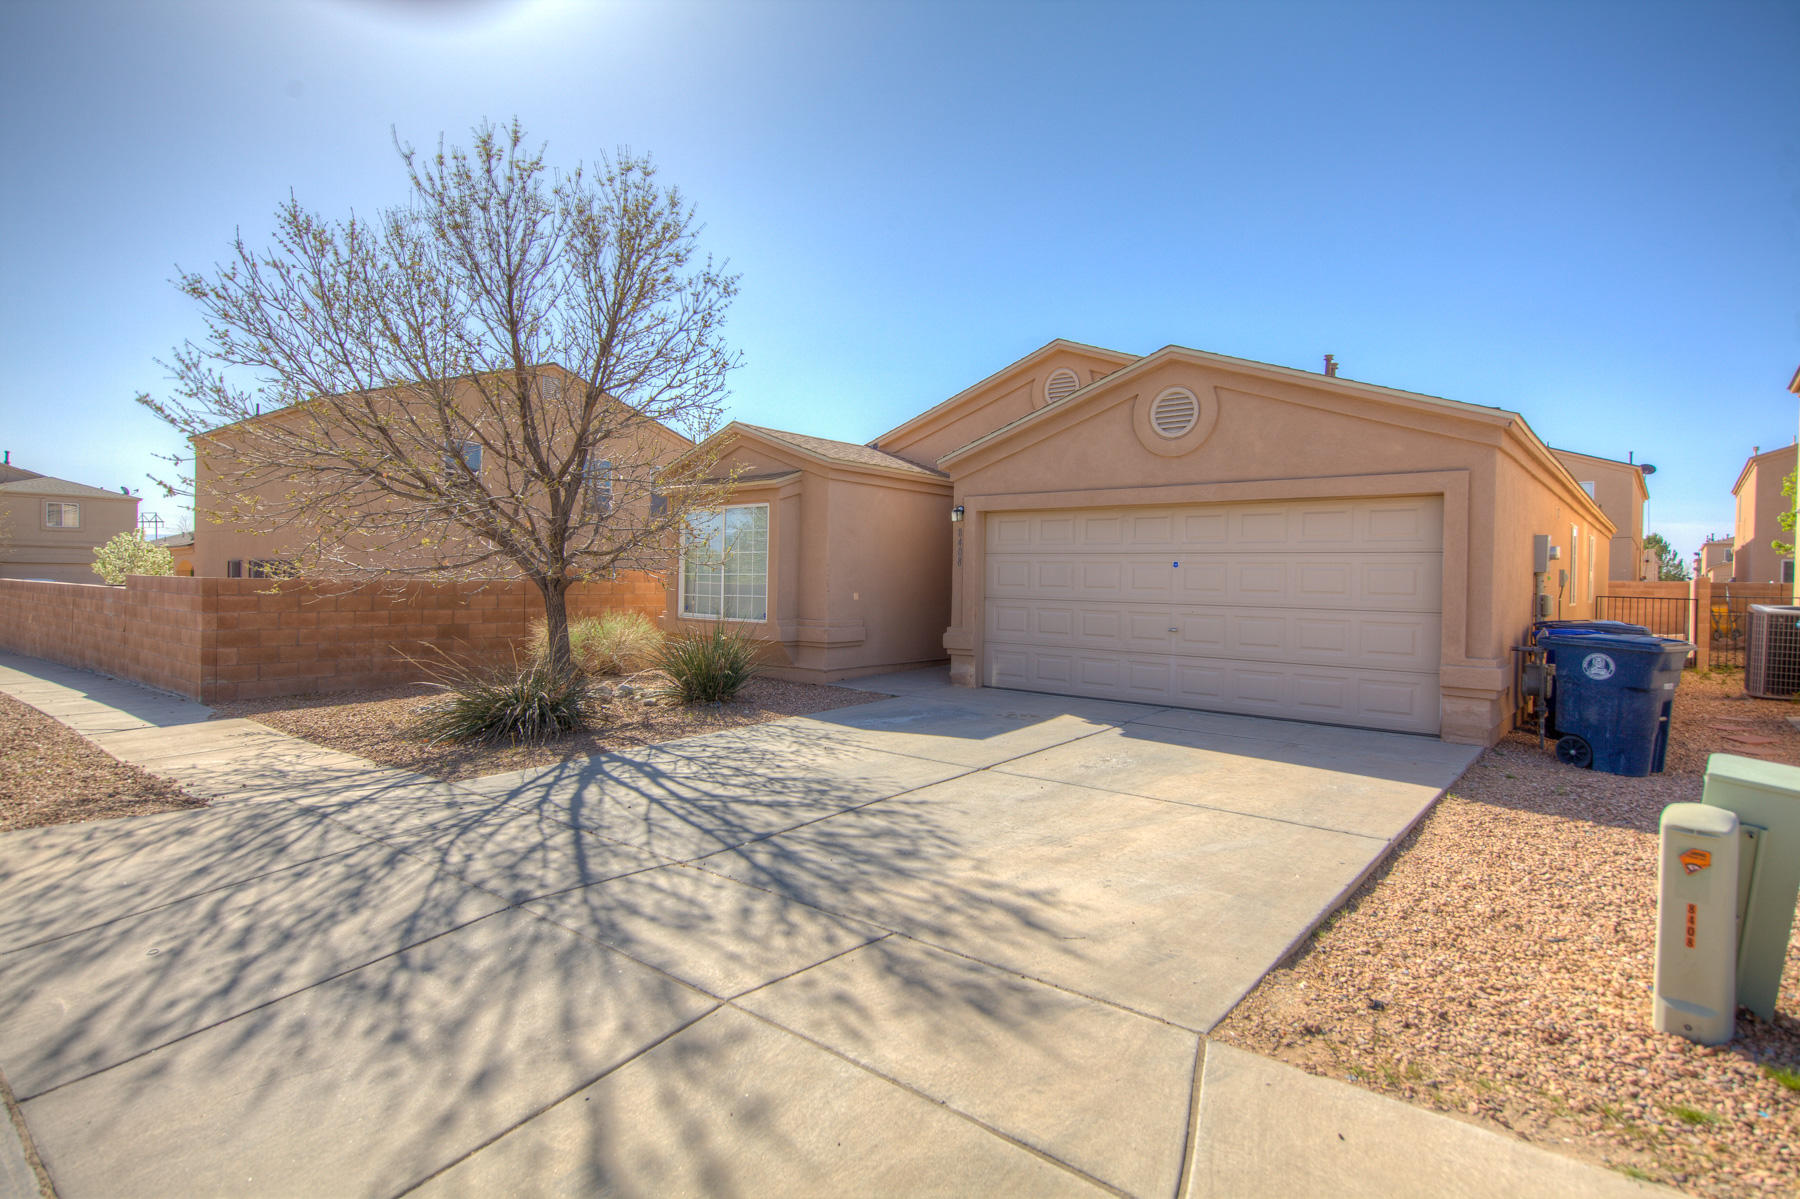 Welcome to this 4 bedroom home. New flooring and new paint throughout, Refrigerated air,  walled backyard, and very close to Anderson Mesa Park. Come check this one out before it sells.